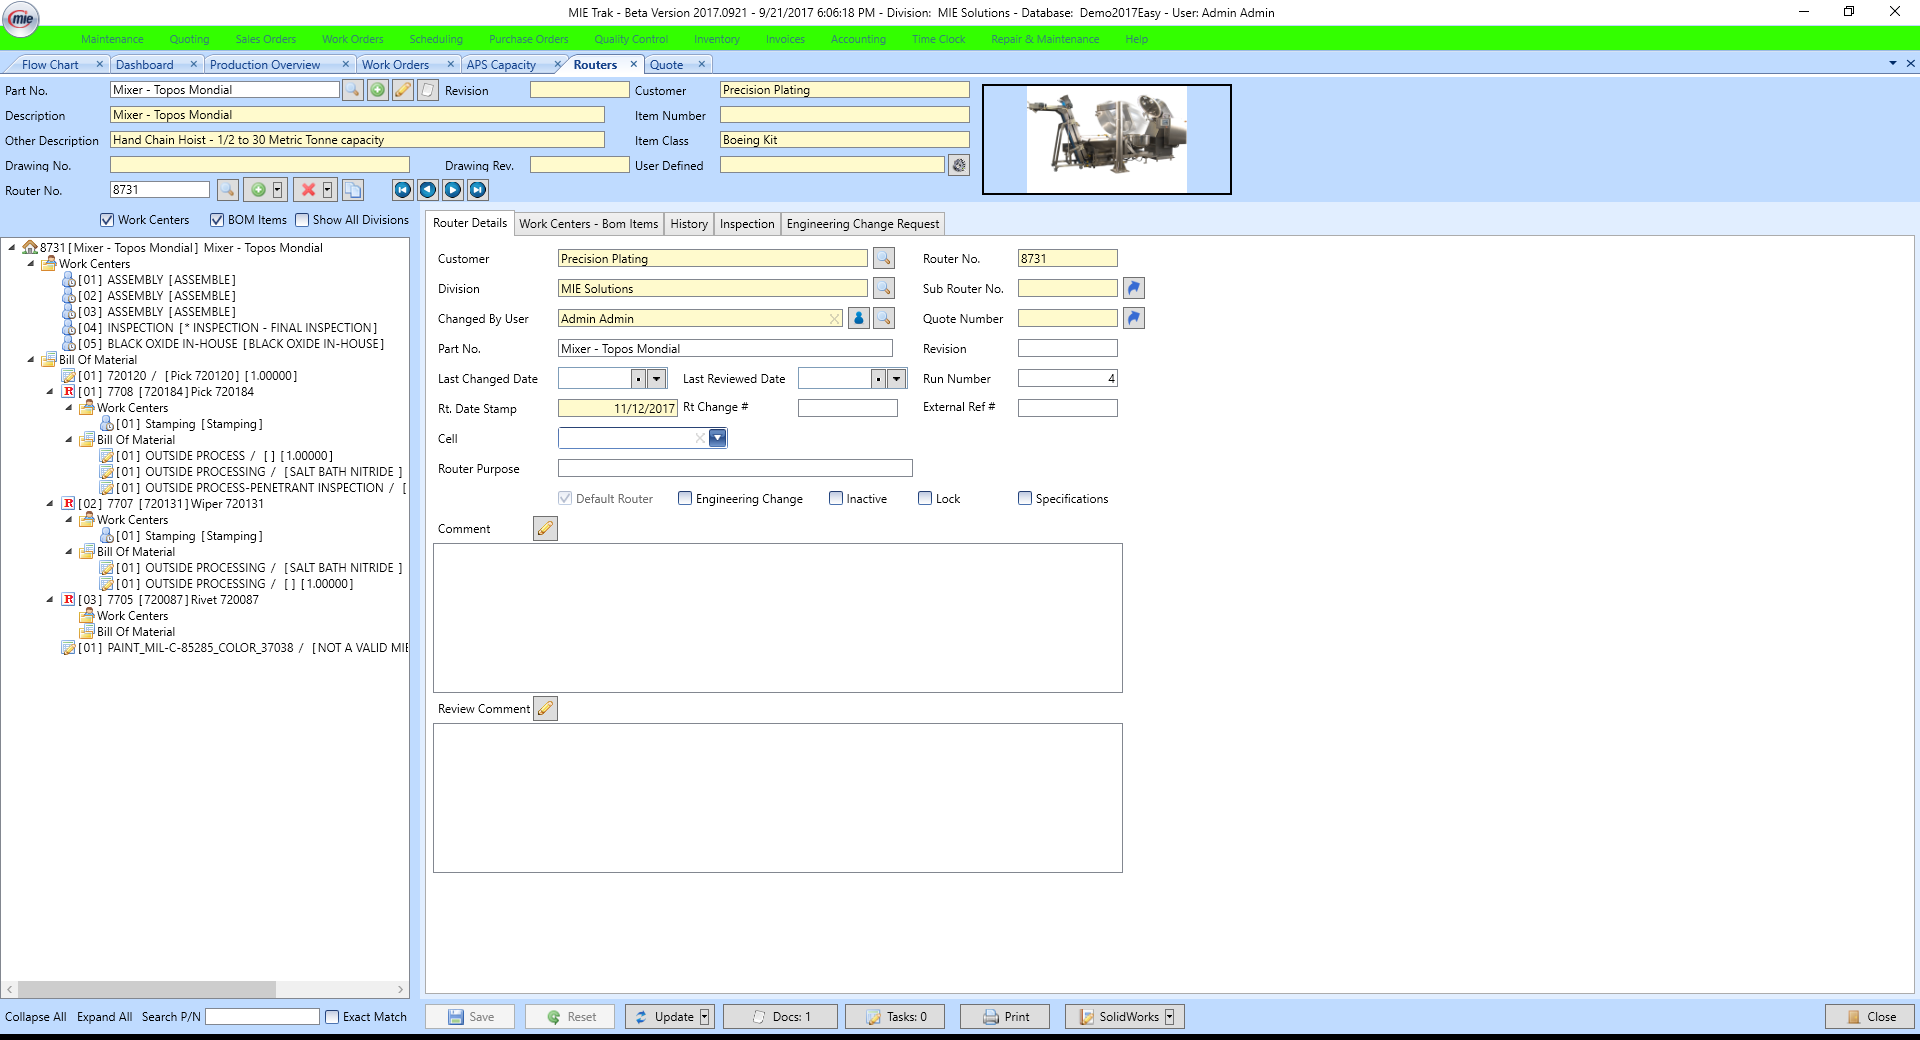 MIE Trak Pro Software - Router with solidworks